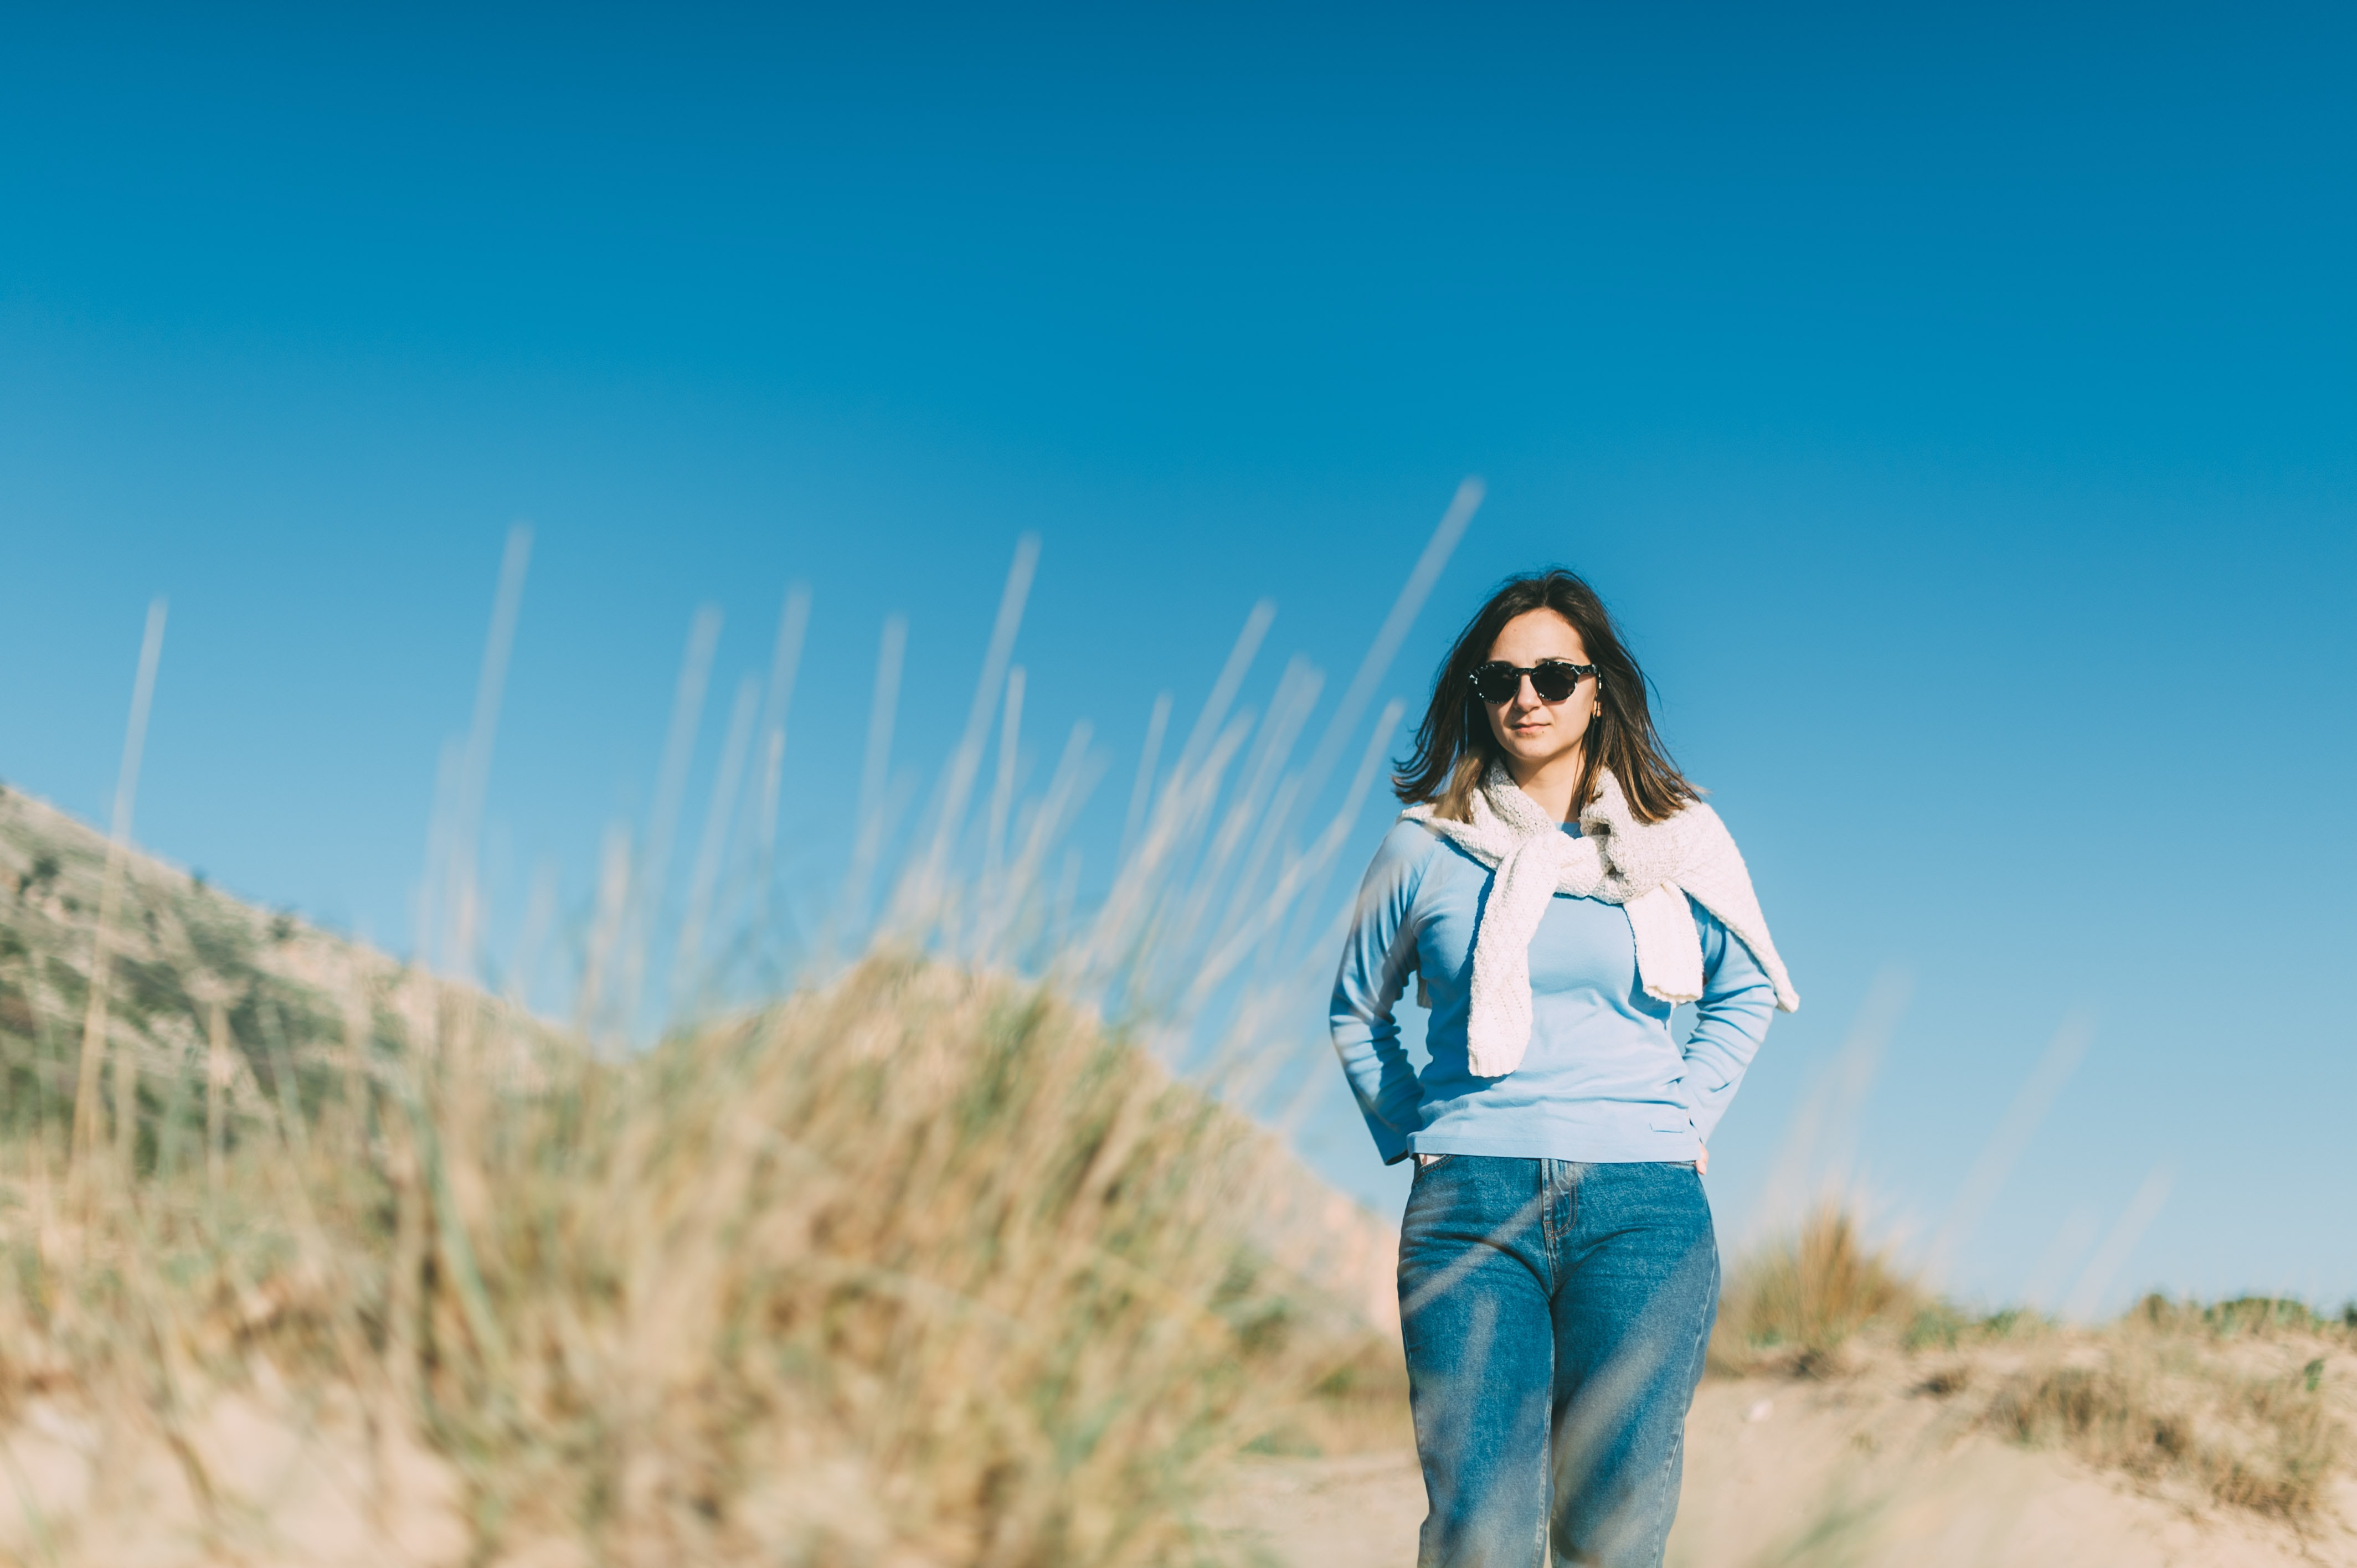 woman wearing blue sweater and blue jeans standing near grass